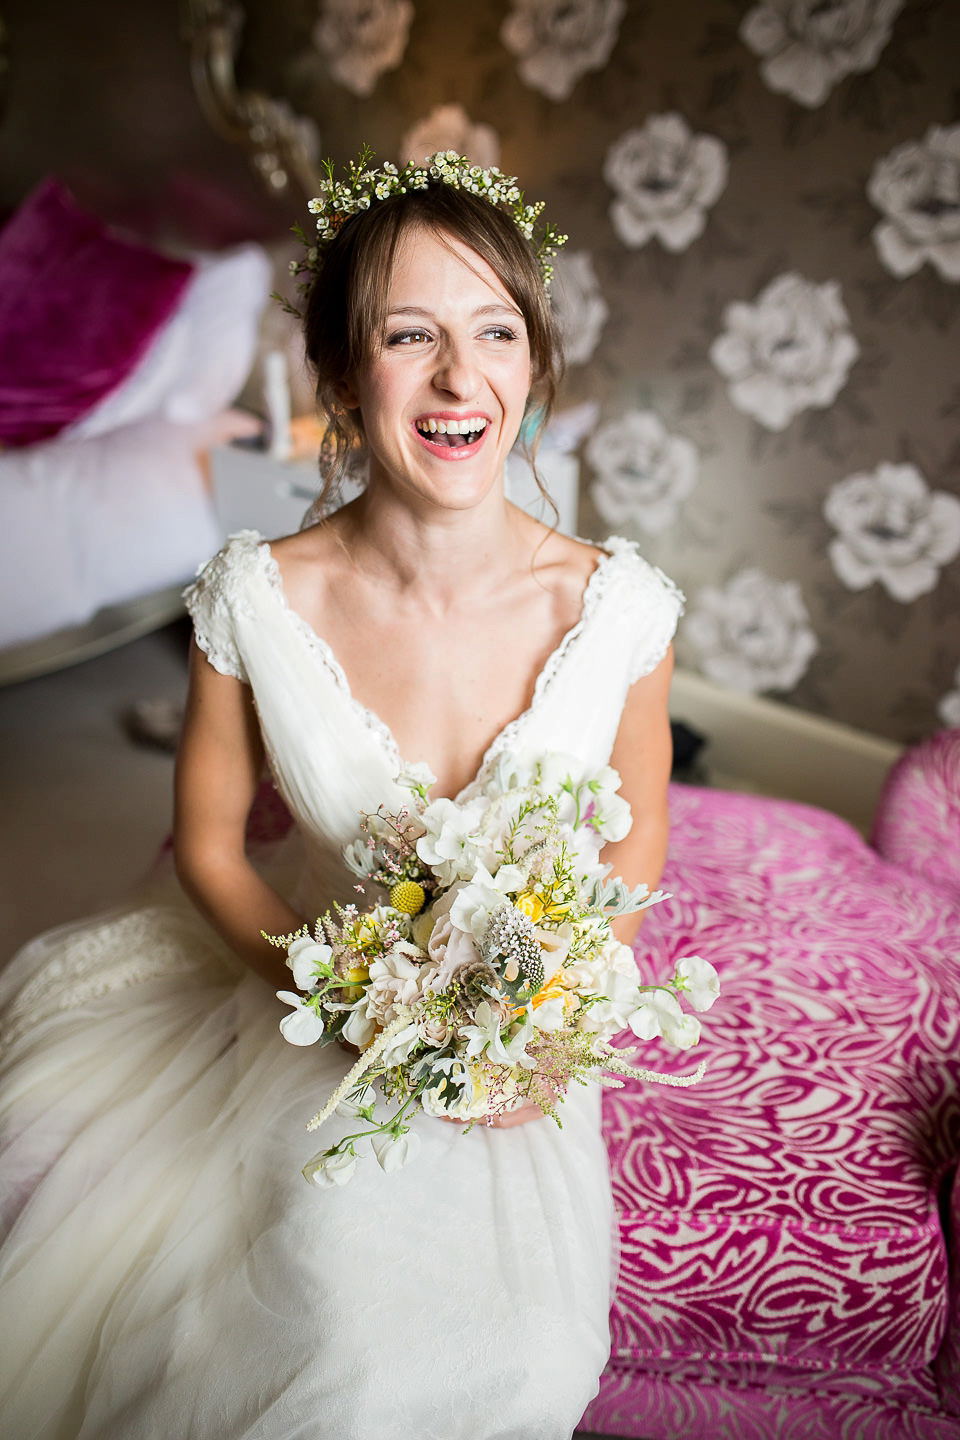 Lusan Mandongus Elegance and an Heirloom Veil for a Relaxed English Country Garden Wedding